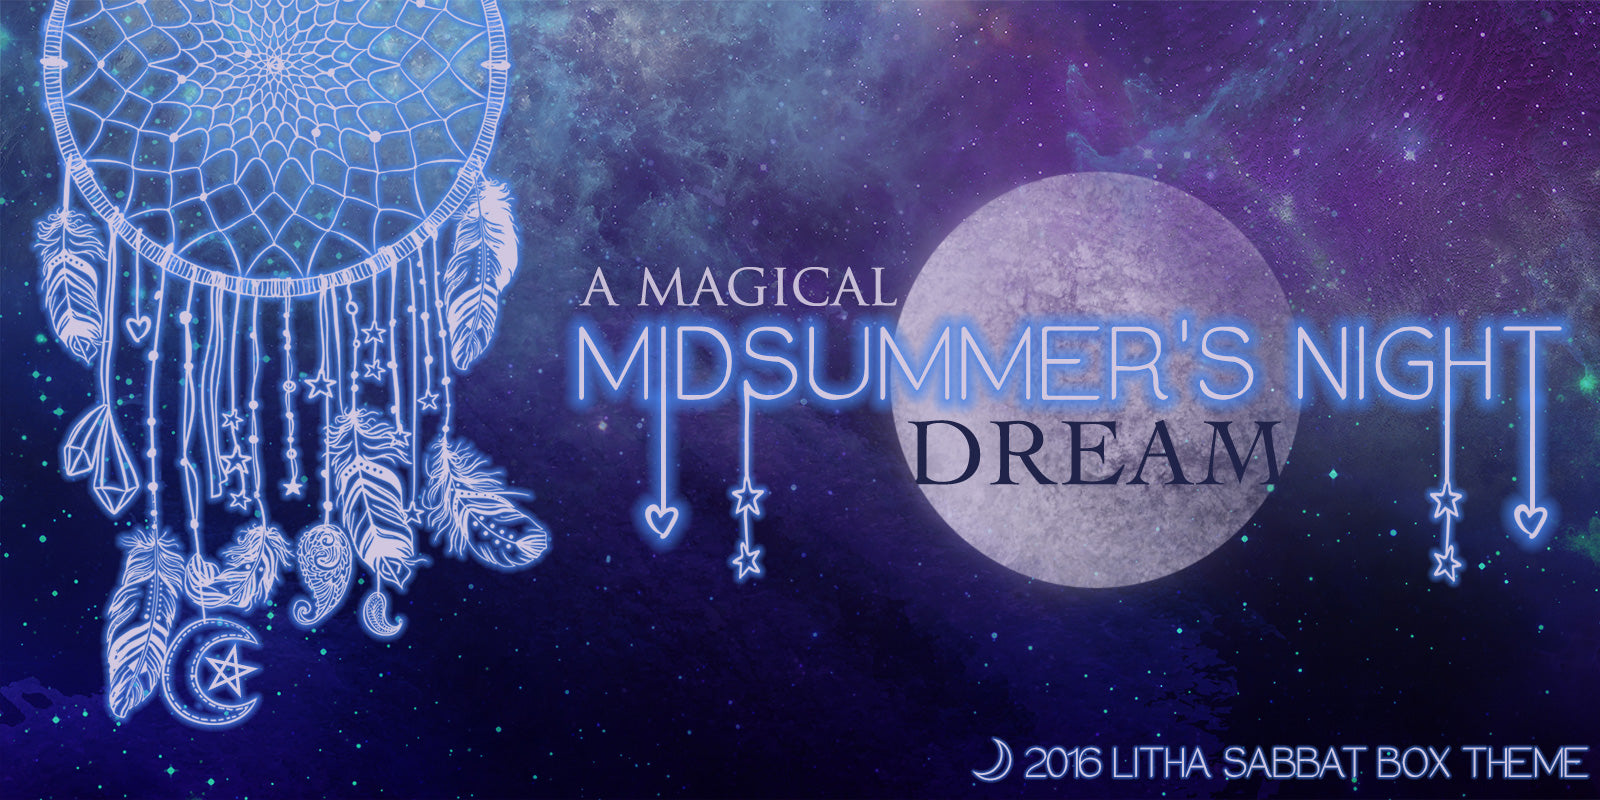 Litha/Midsummer Sabbat Box Theme Release • A Magical Midsummer's Night Dream